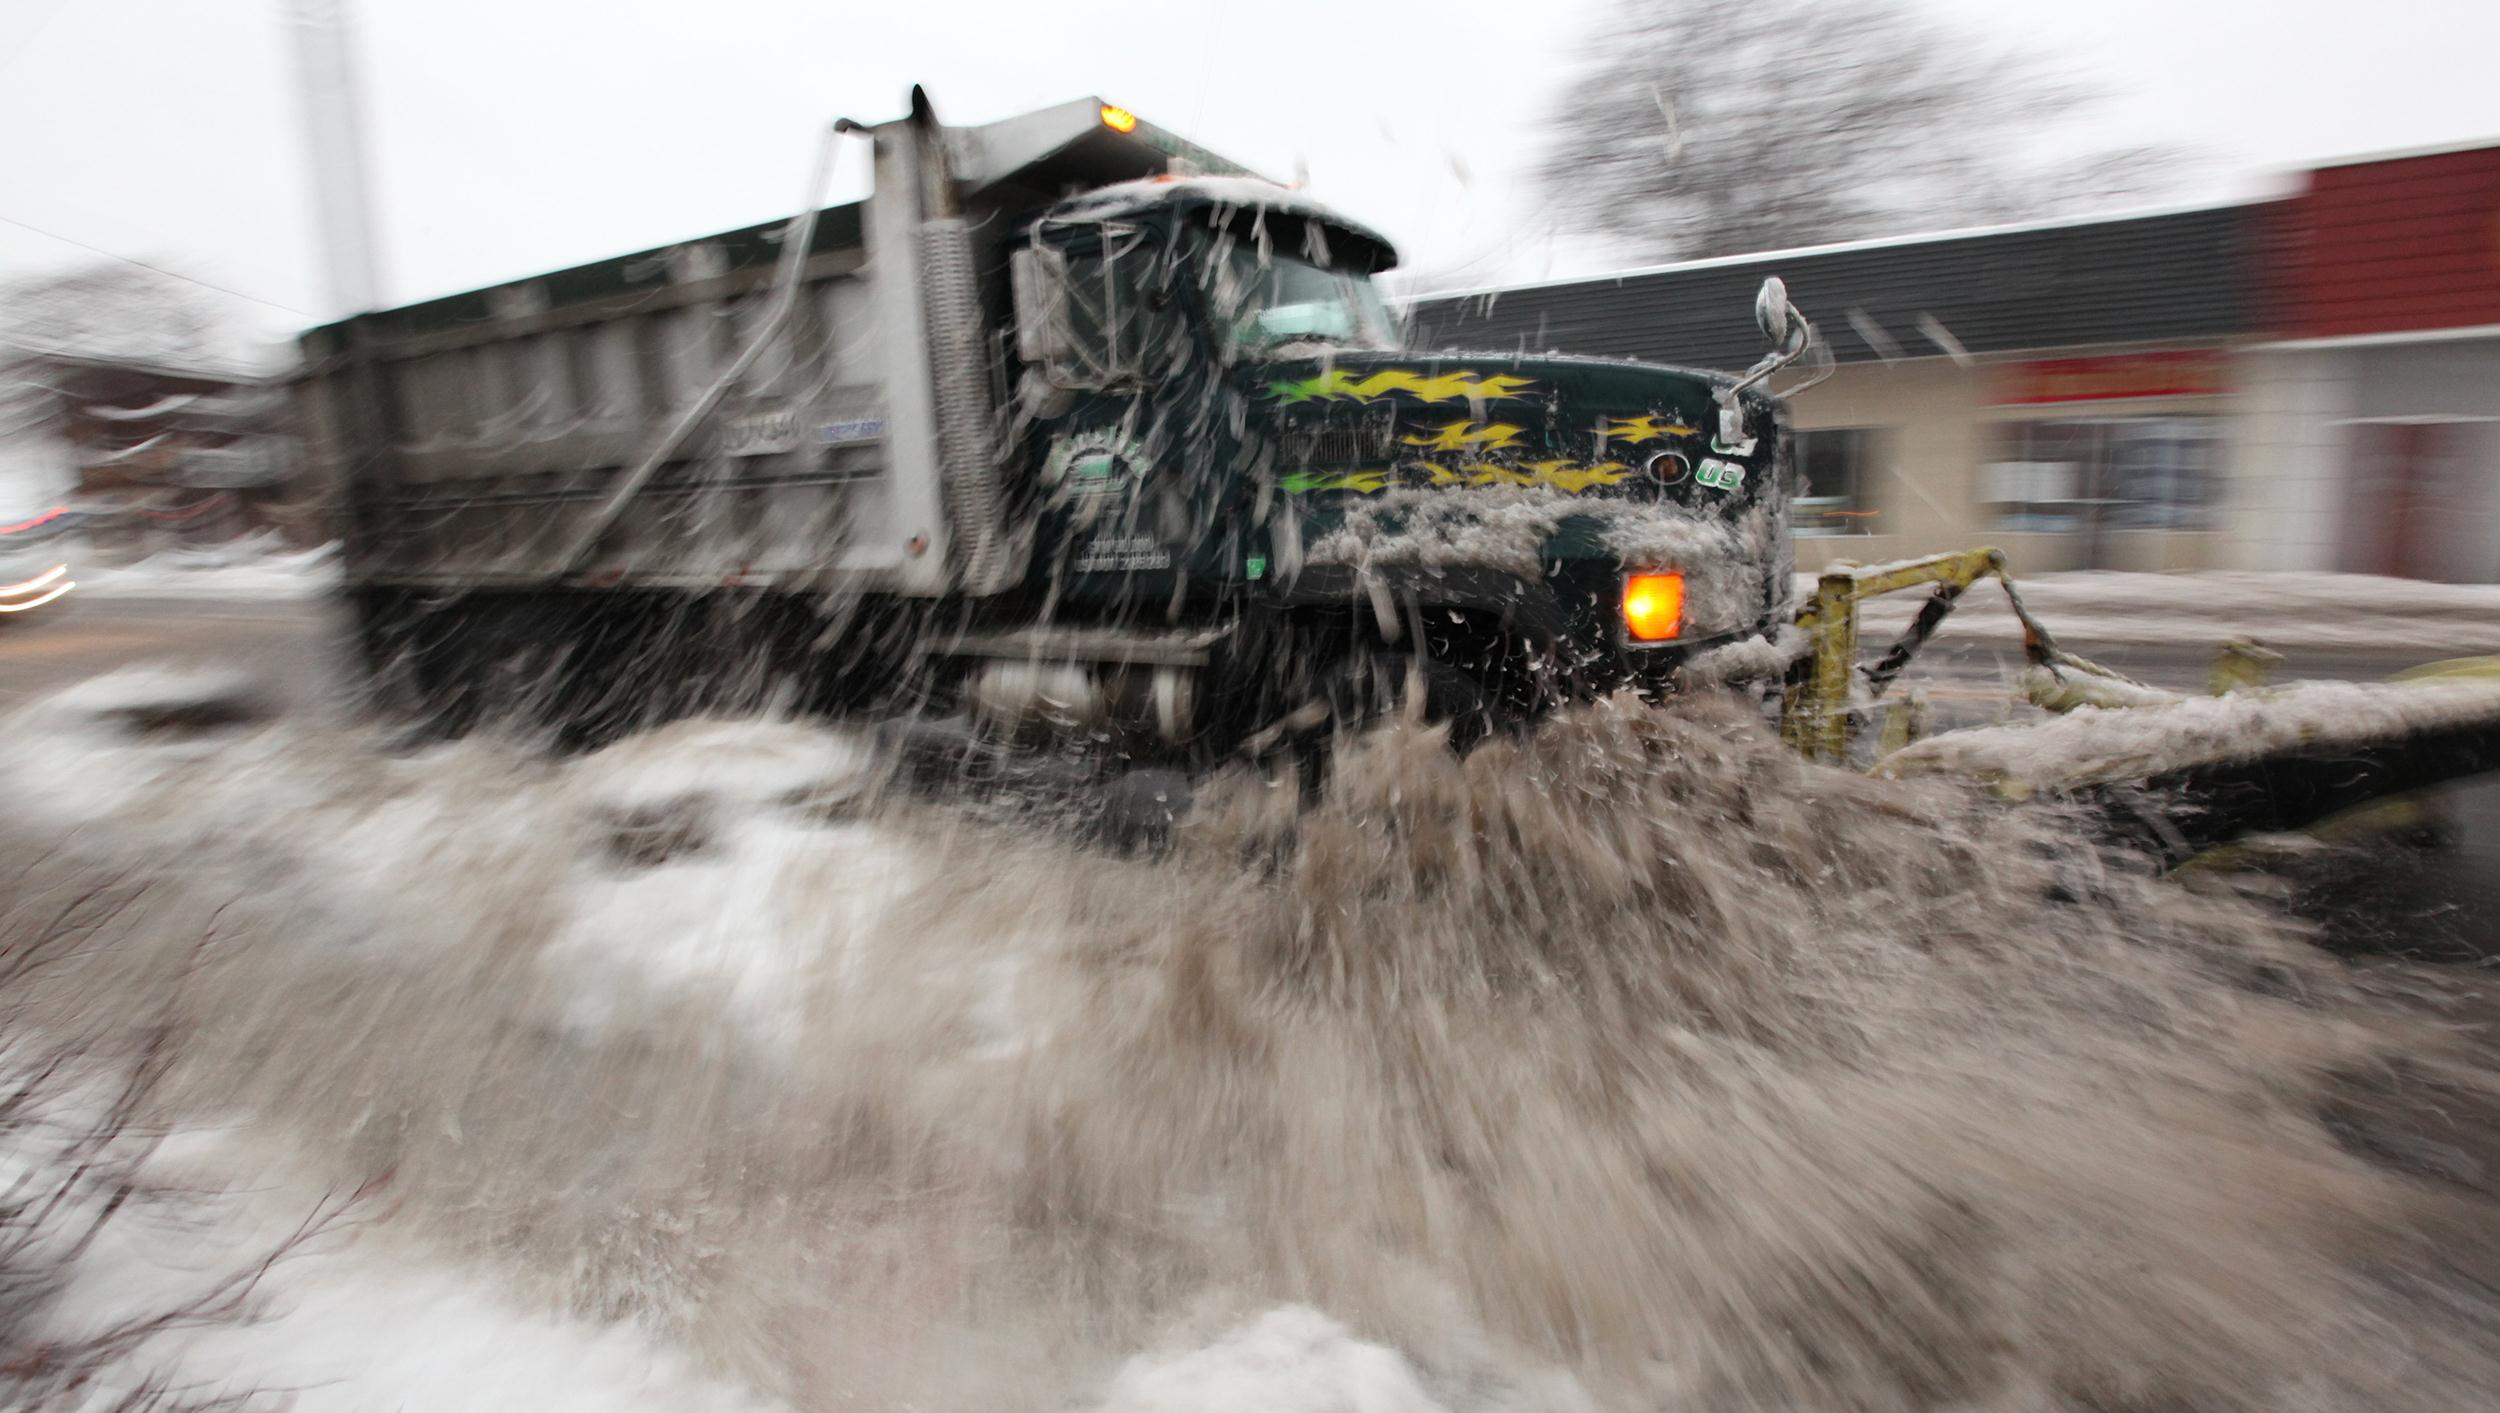 Image:  A plow cleans up North Ave. in Garwood, N.J.